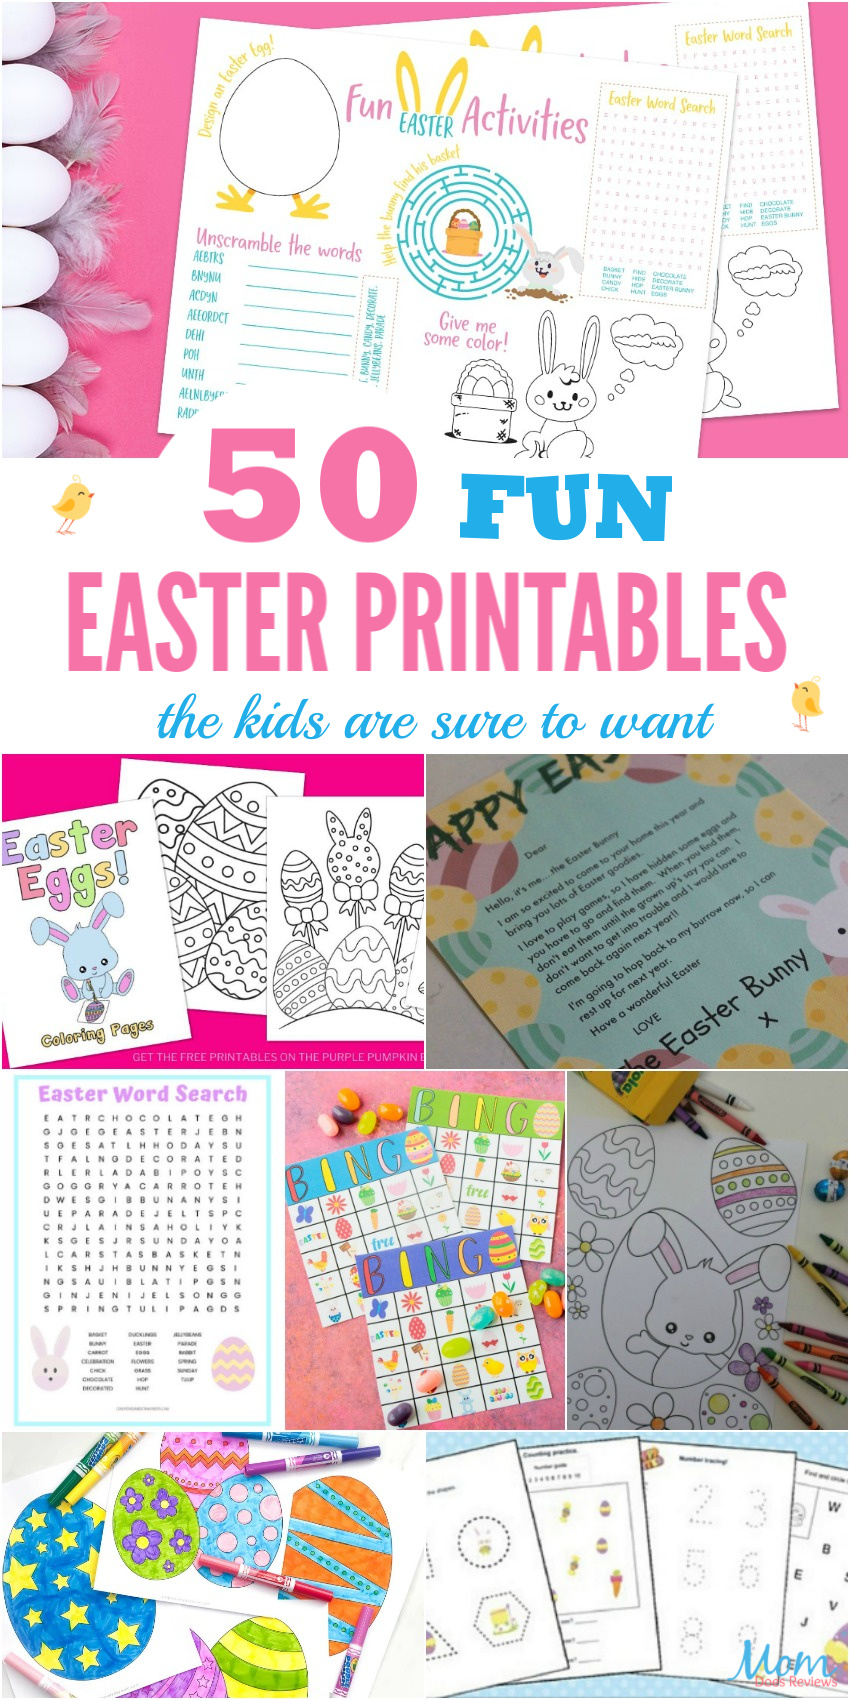 50 Fun Easter Printables the Kids are Sure to Want #Easter #printables #boredombuster